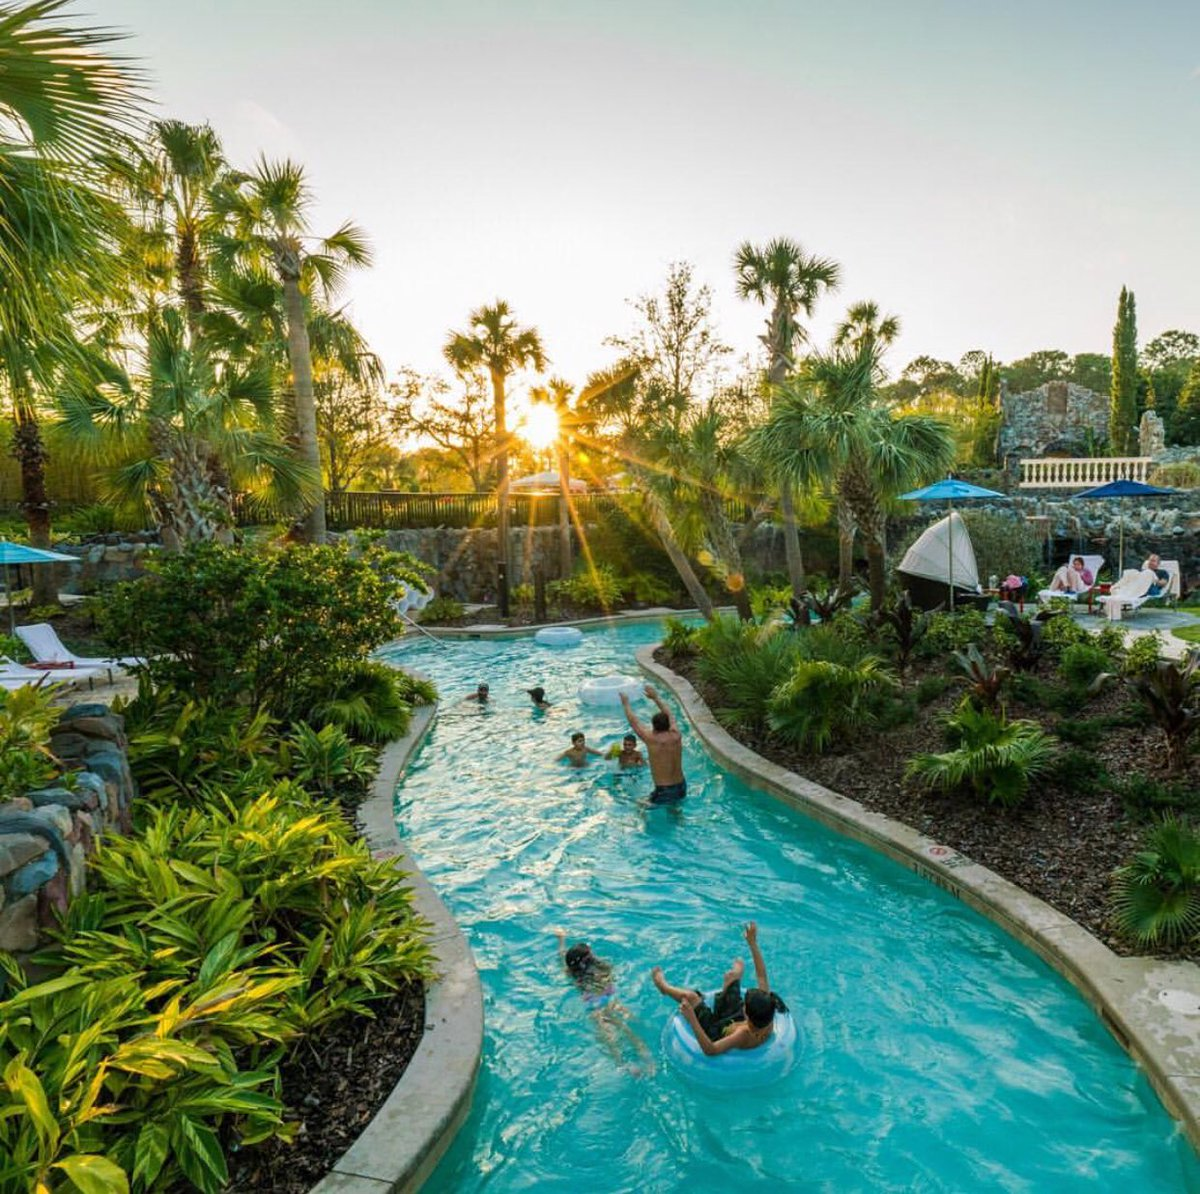 November doesn't get much better than this... until Thanksgiving Day! What are your holiday plans? (: @TravelBabbo) #FSOrlando #LoveFL #Regram <br>http://pic.twitter.com/sQhm1pVPwE